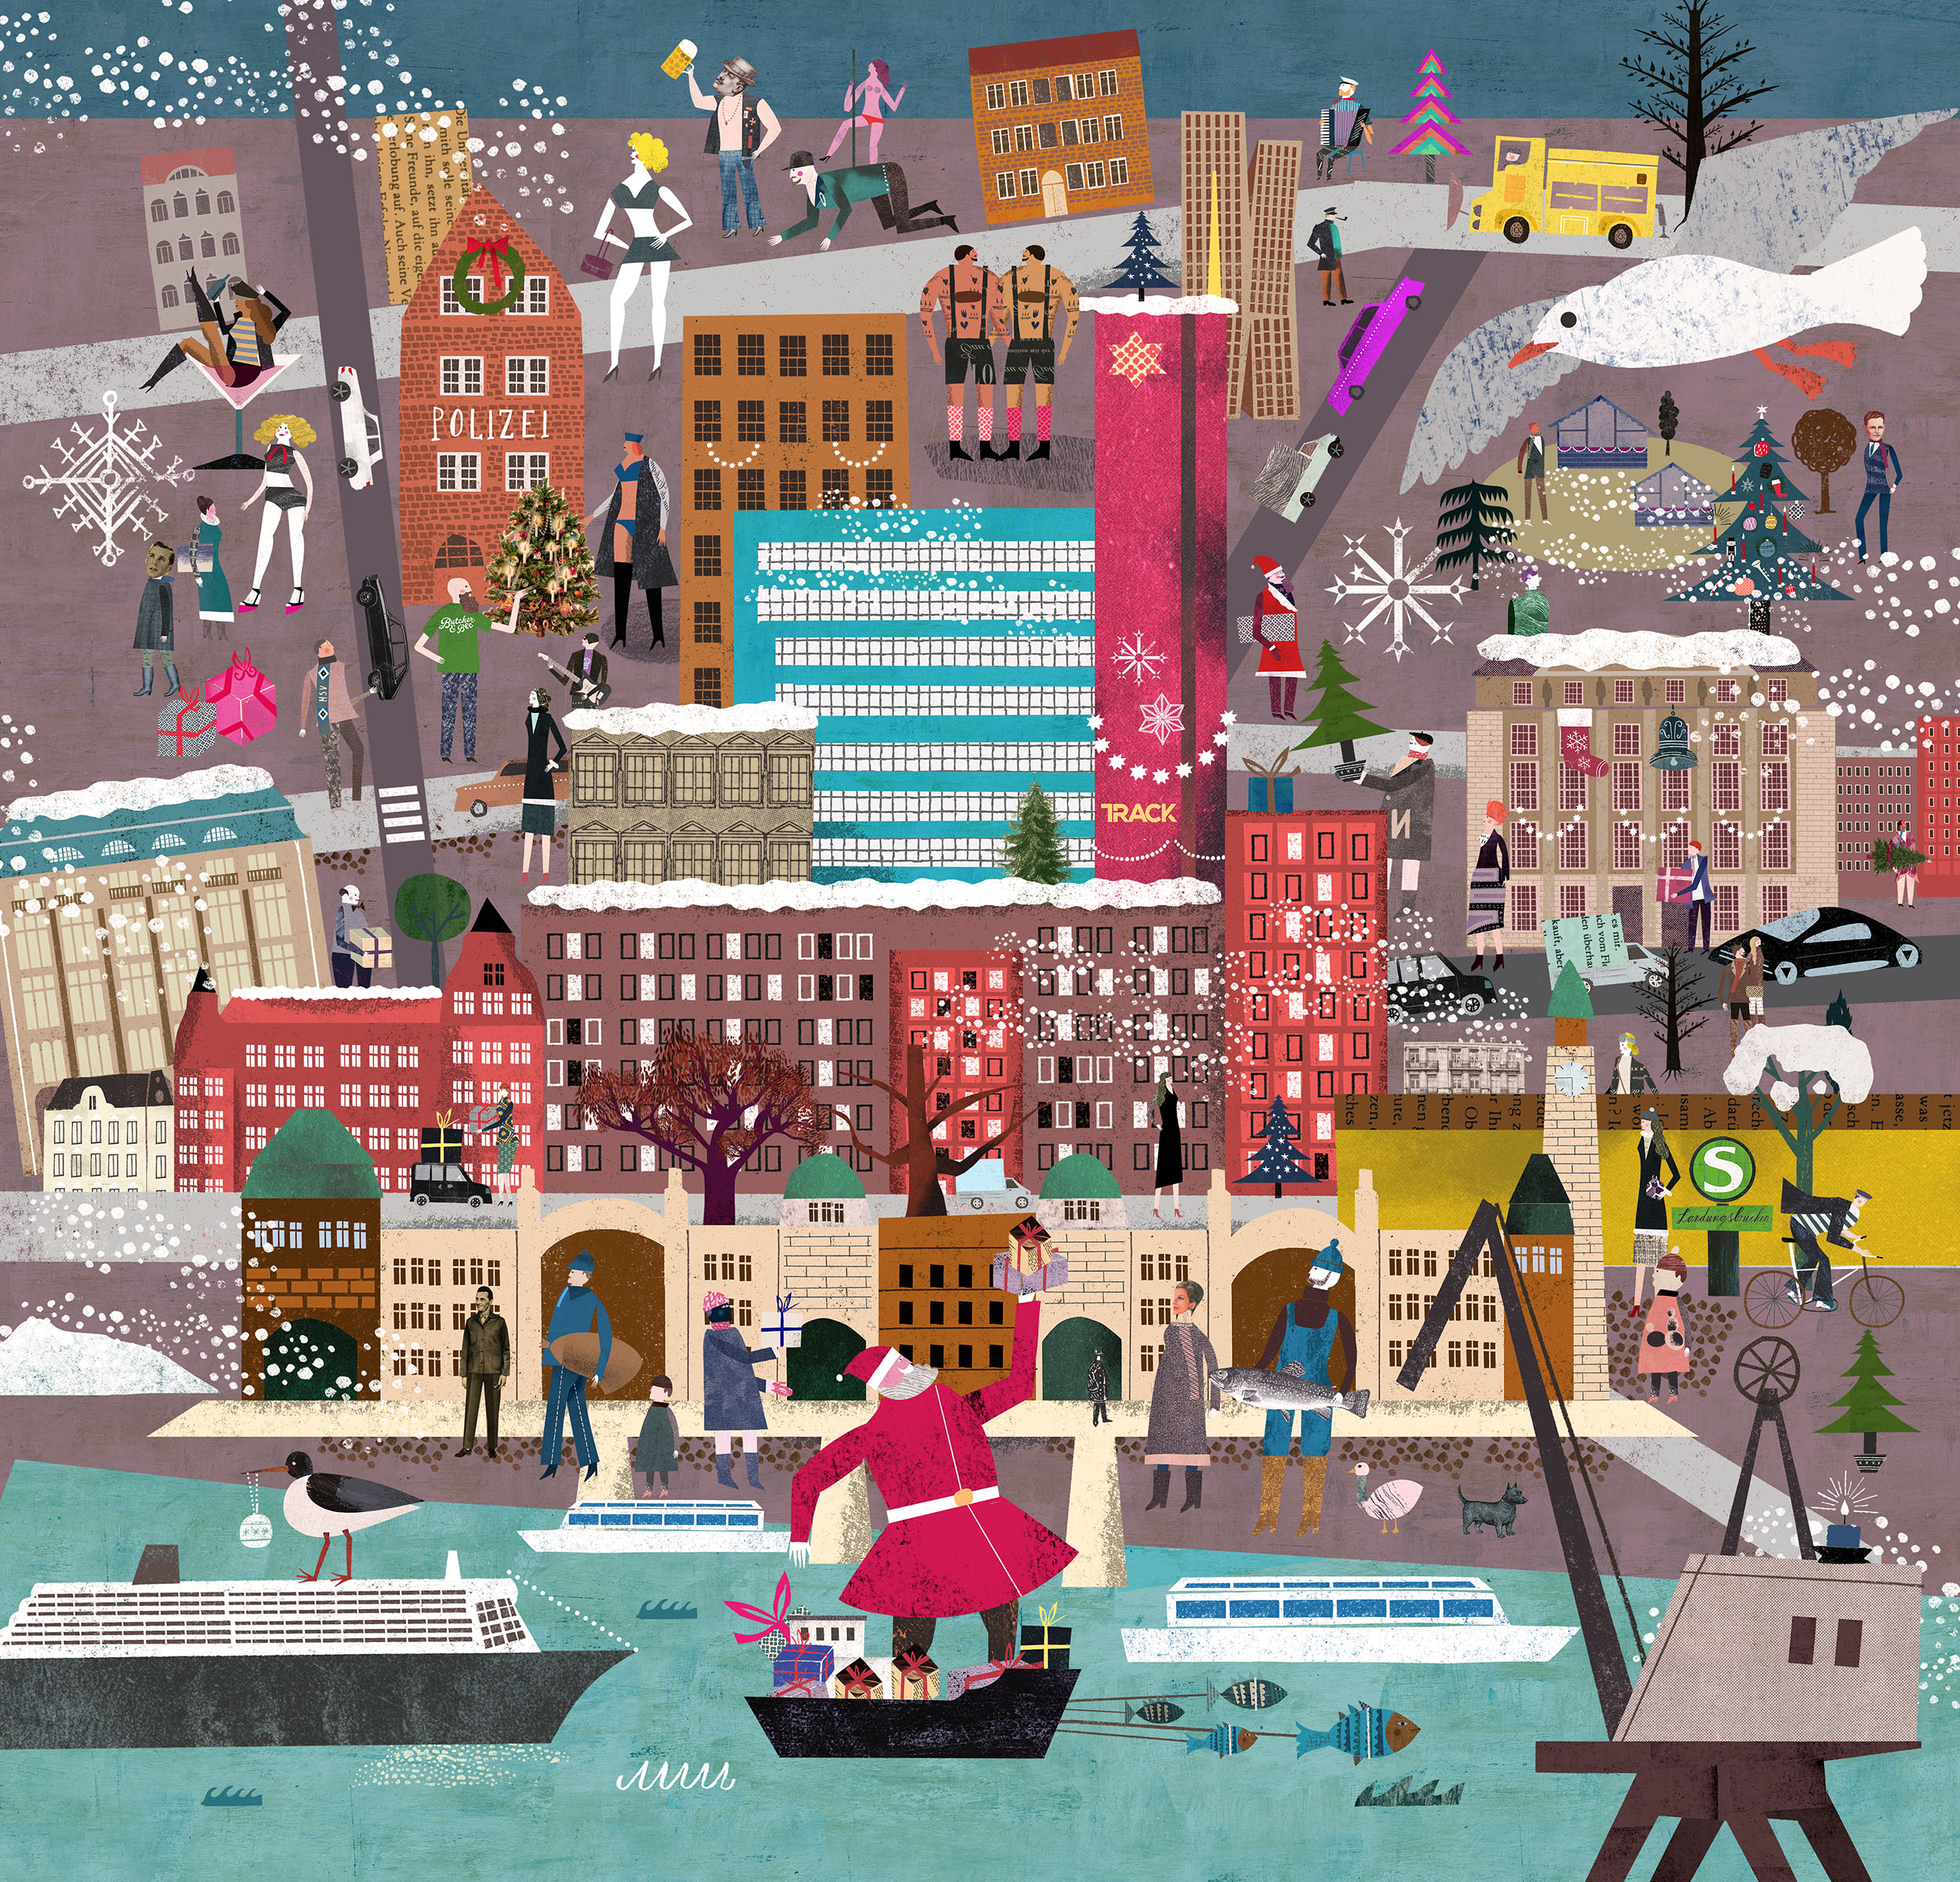 Christmas Calendar Illustration : Christmas calendar illustration for track agency hamburg